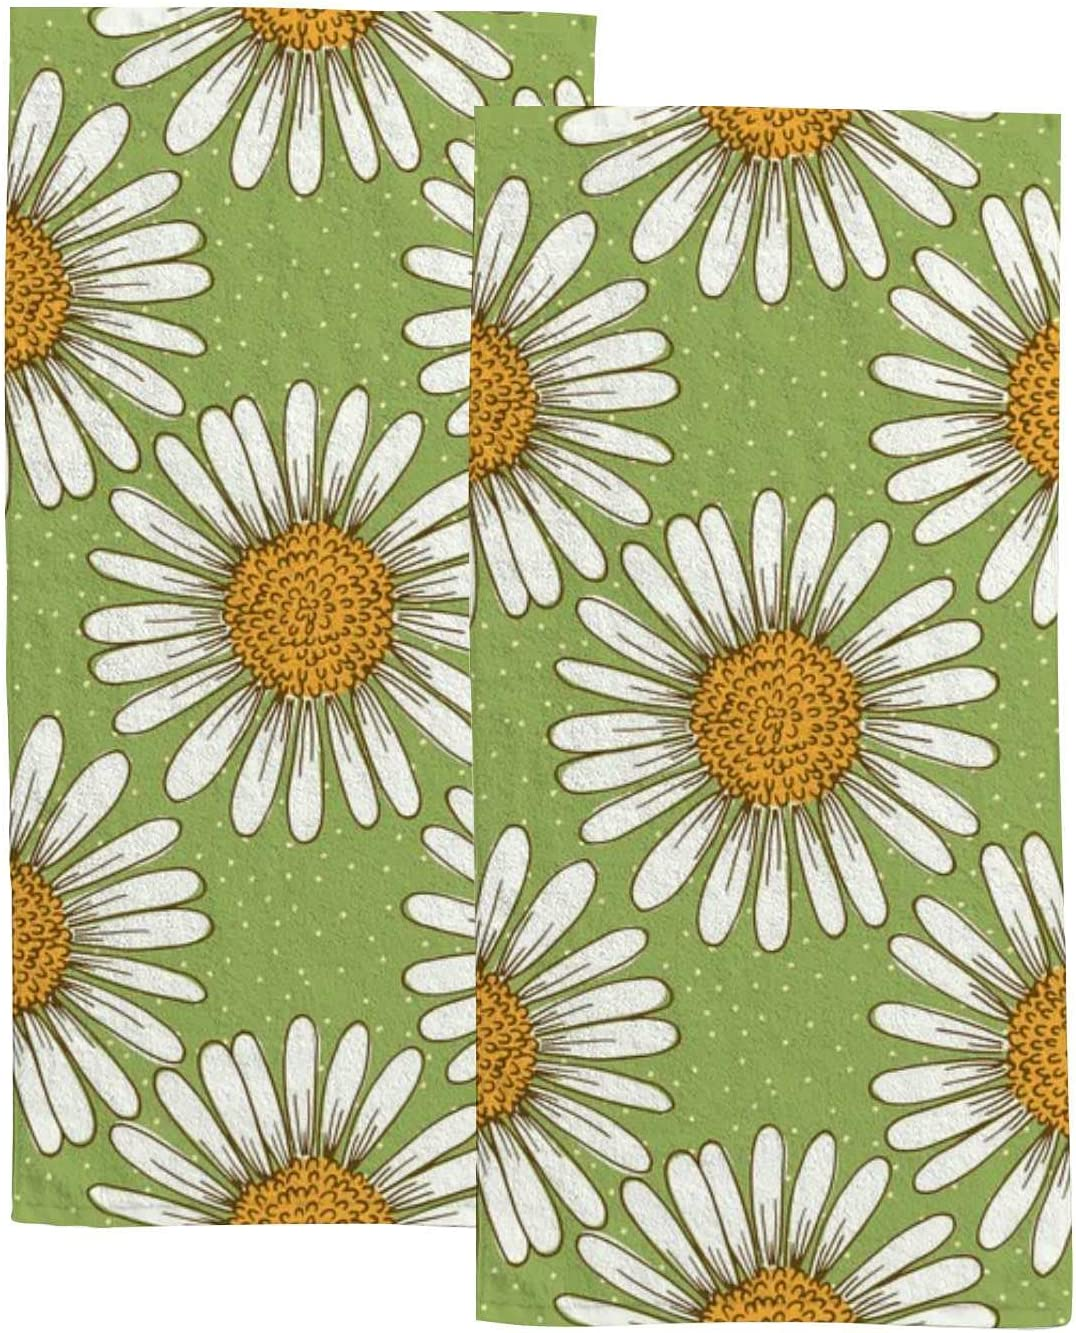 70% OFF Clearance SALE! Limited time! Outlet Vantaso Daisy Flower on Green Hand 2 Bathroom Towels for Kit Set